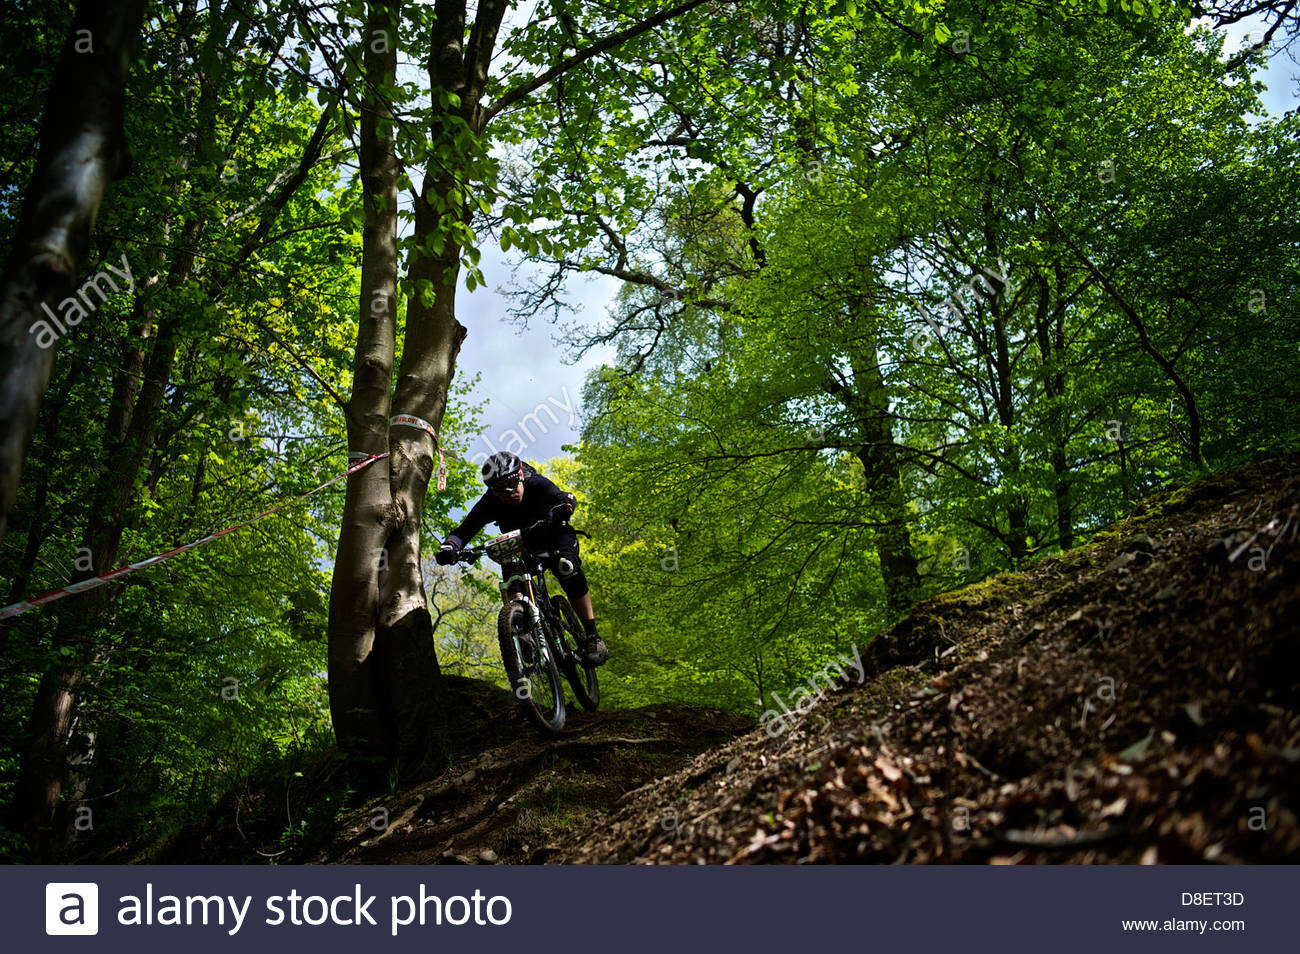 A mountain biker needs all his focus as he descends at speed over unpredictable terrain at Glentress trails. - Stock Image